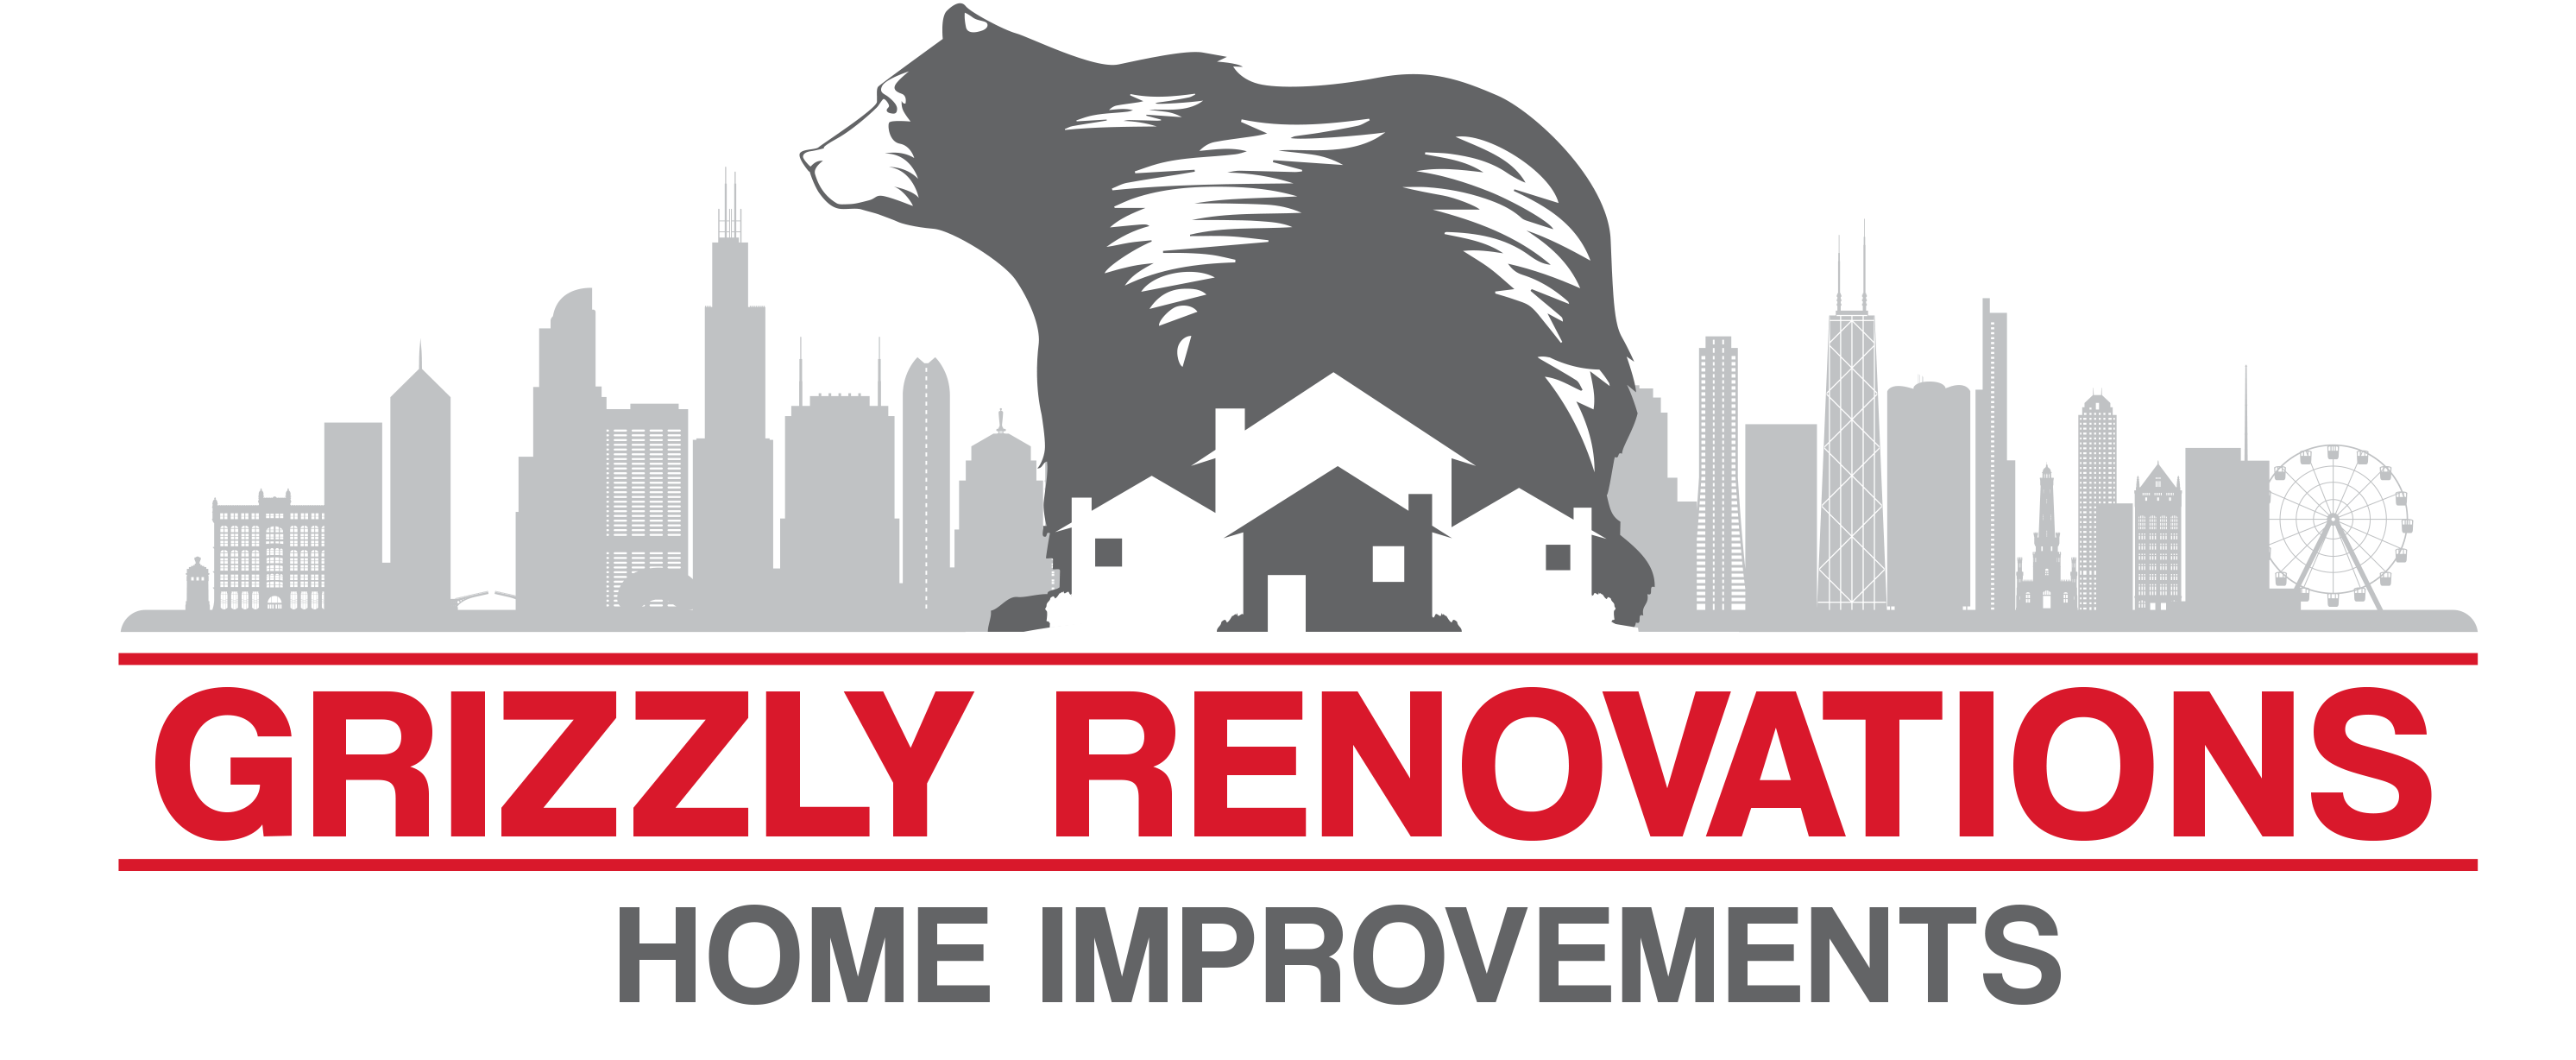 Grizzly renovation, Naperville construction company